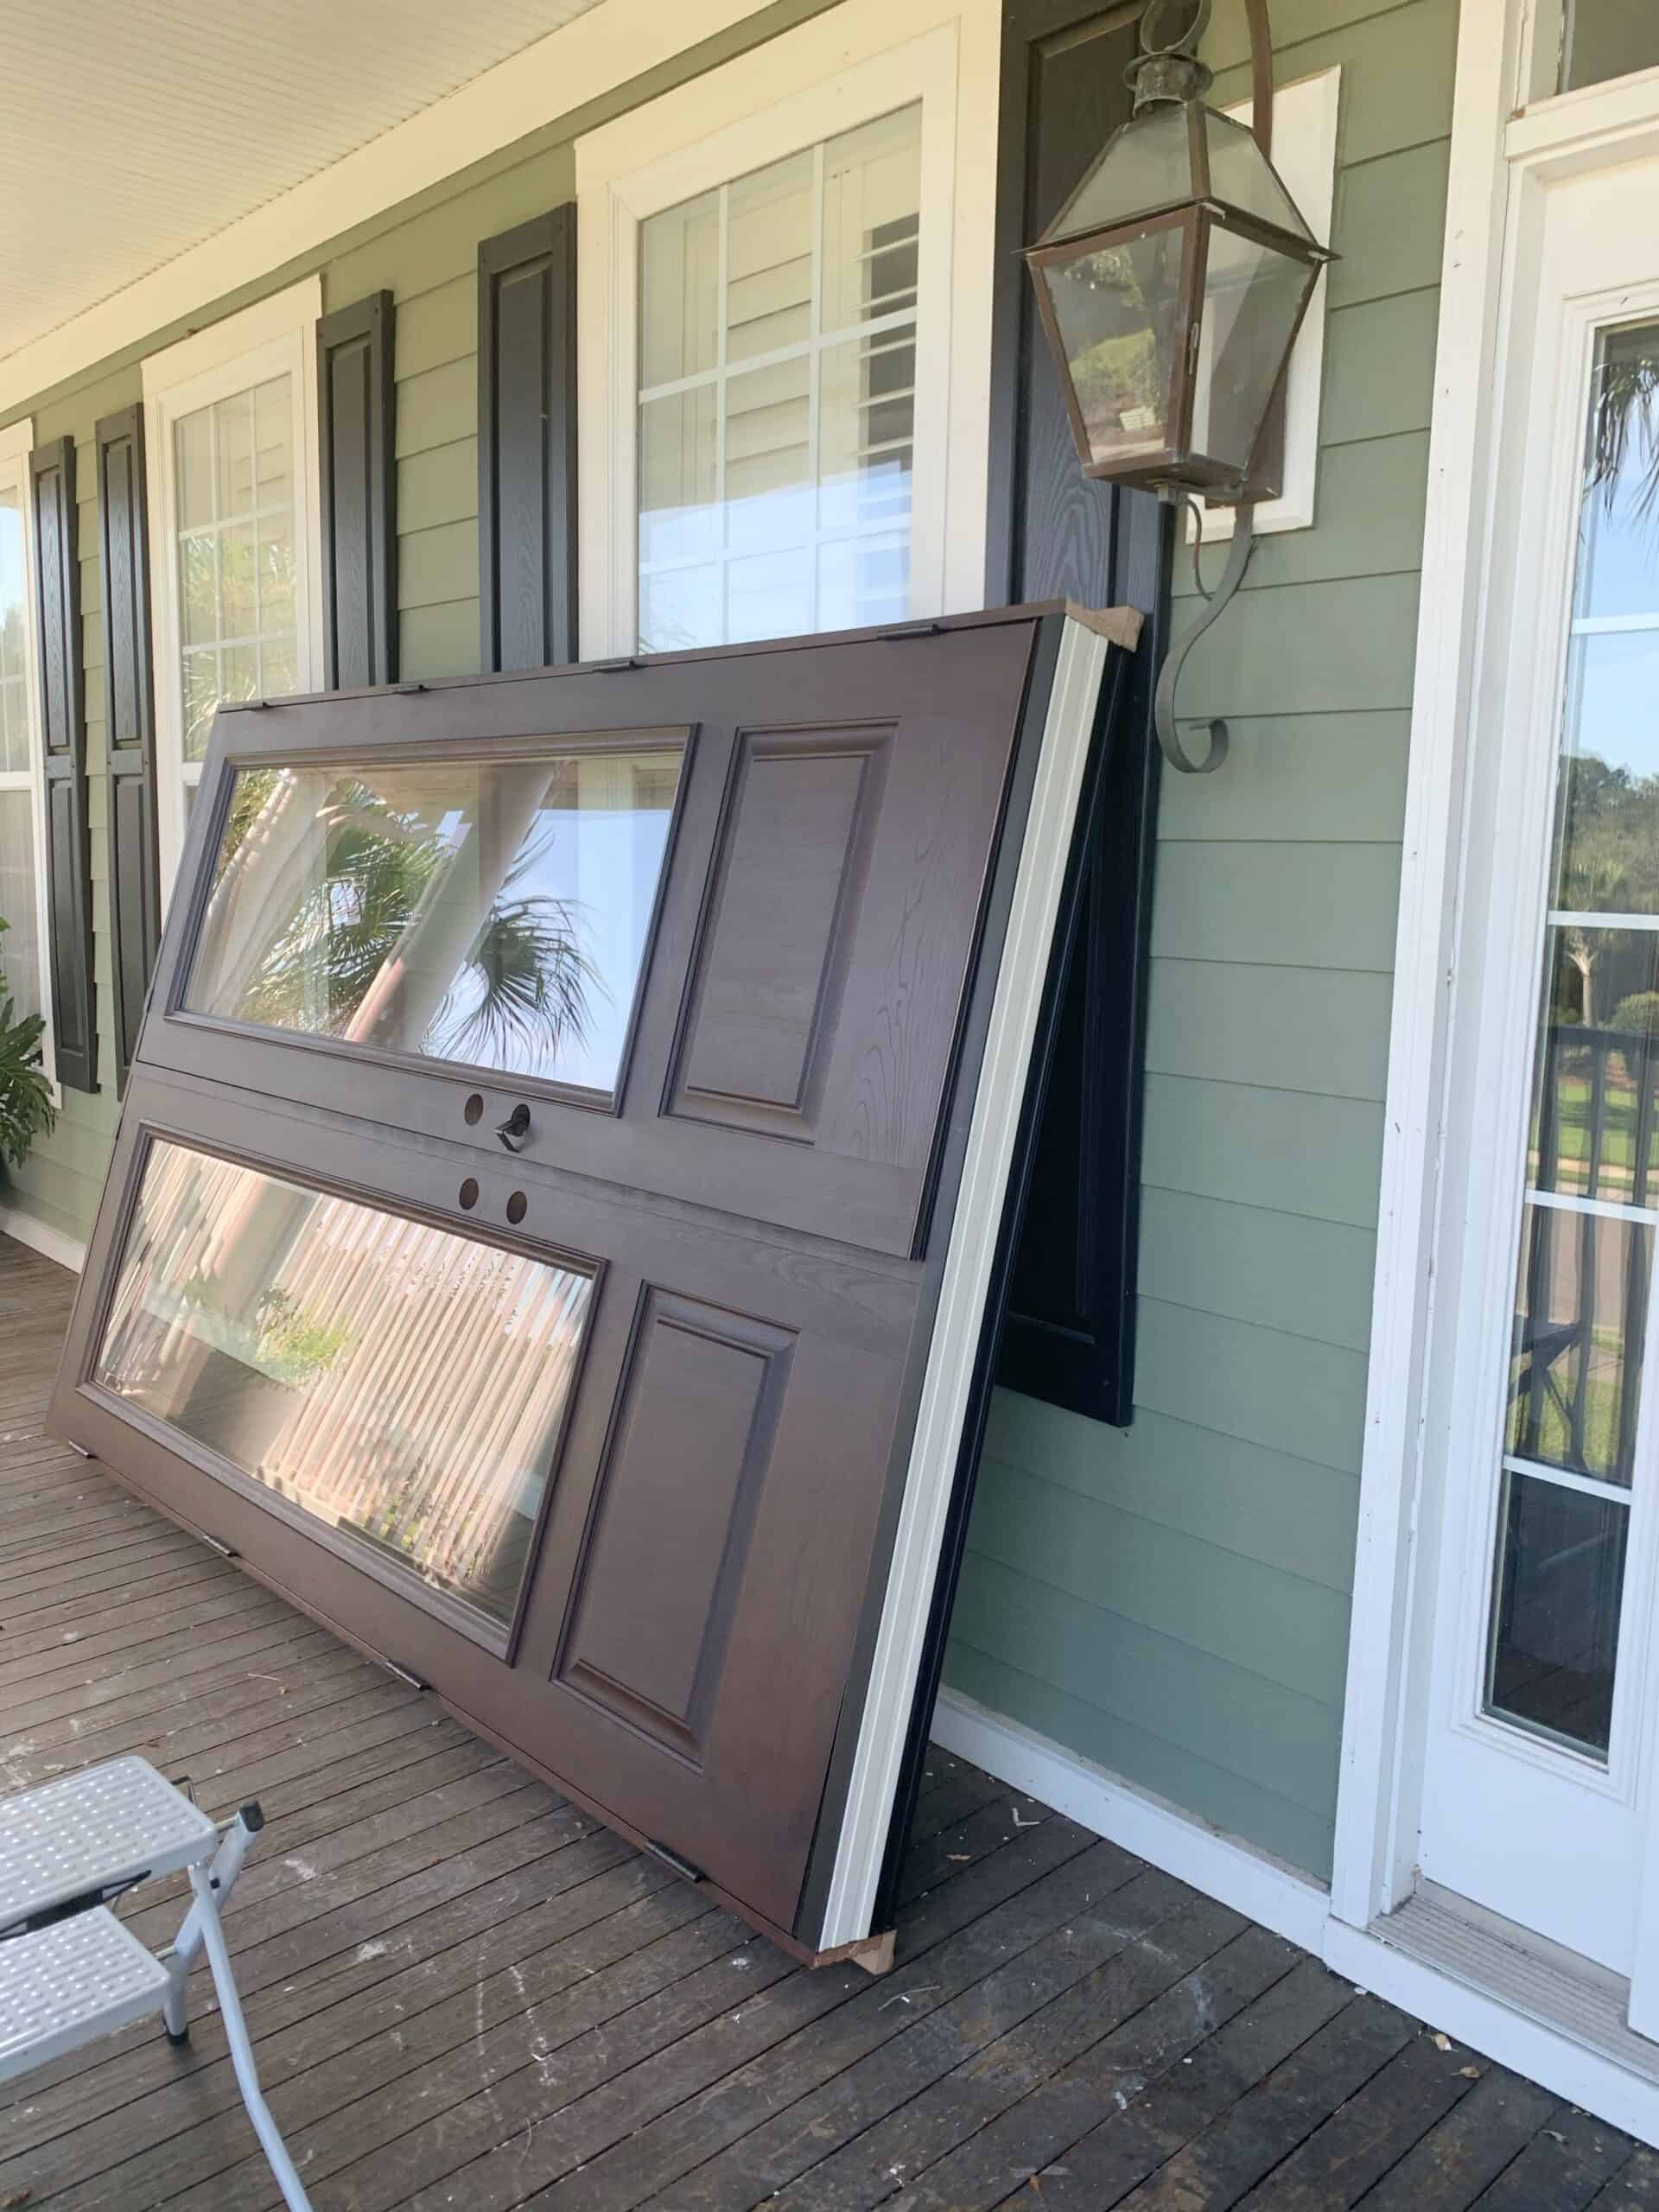 How we replaced our single front door with double glass front doors.  #frontdoors #doors #frontporch #southernliving #beachhouse #coastalcottage #frontdoordesign #doublefrontdoors #jeldwen